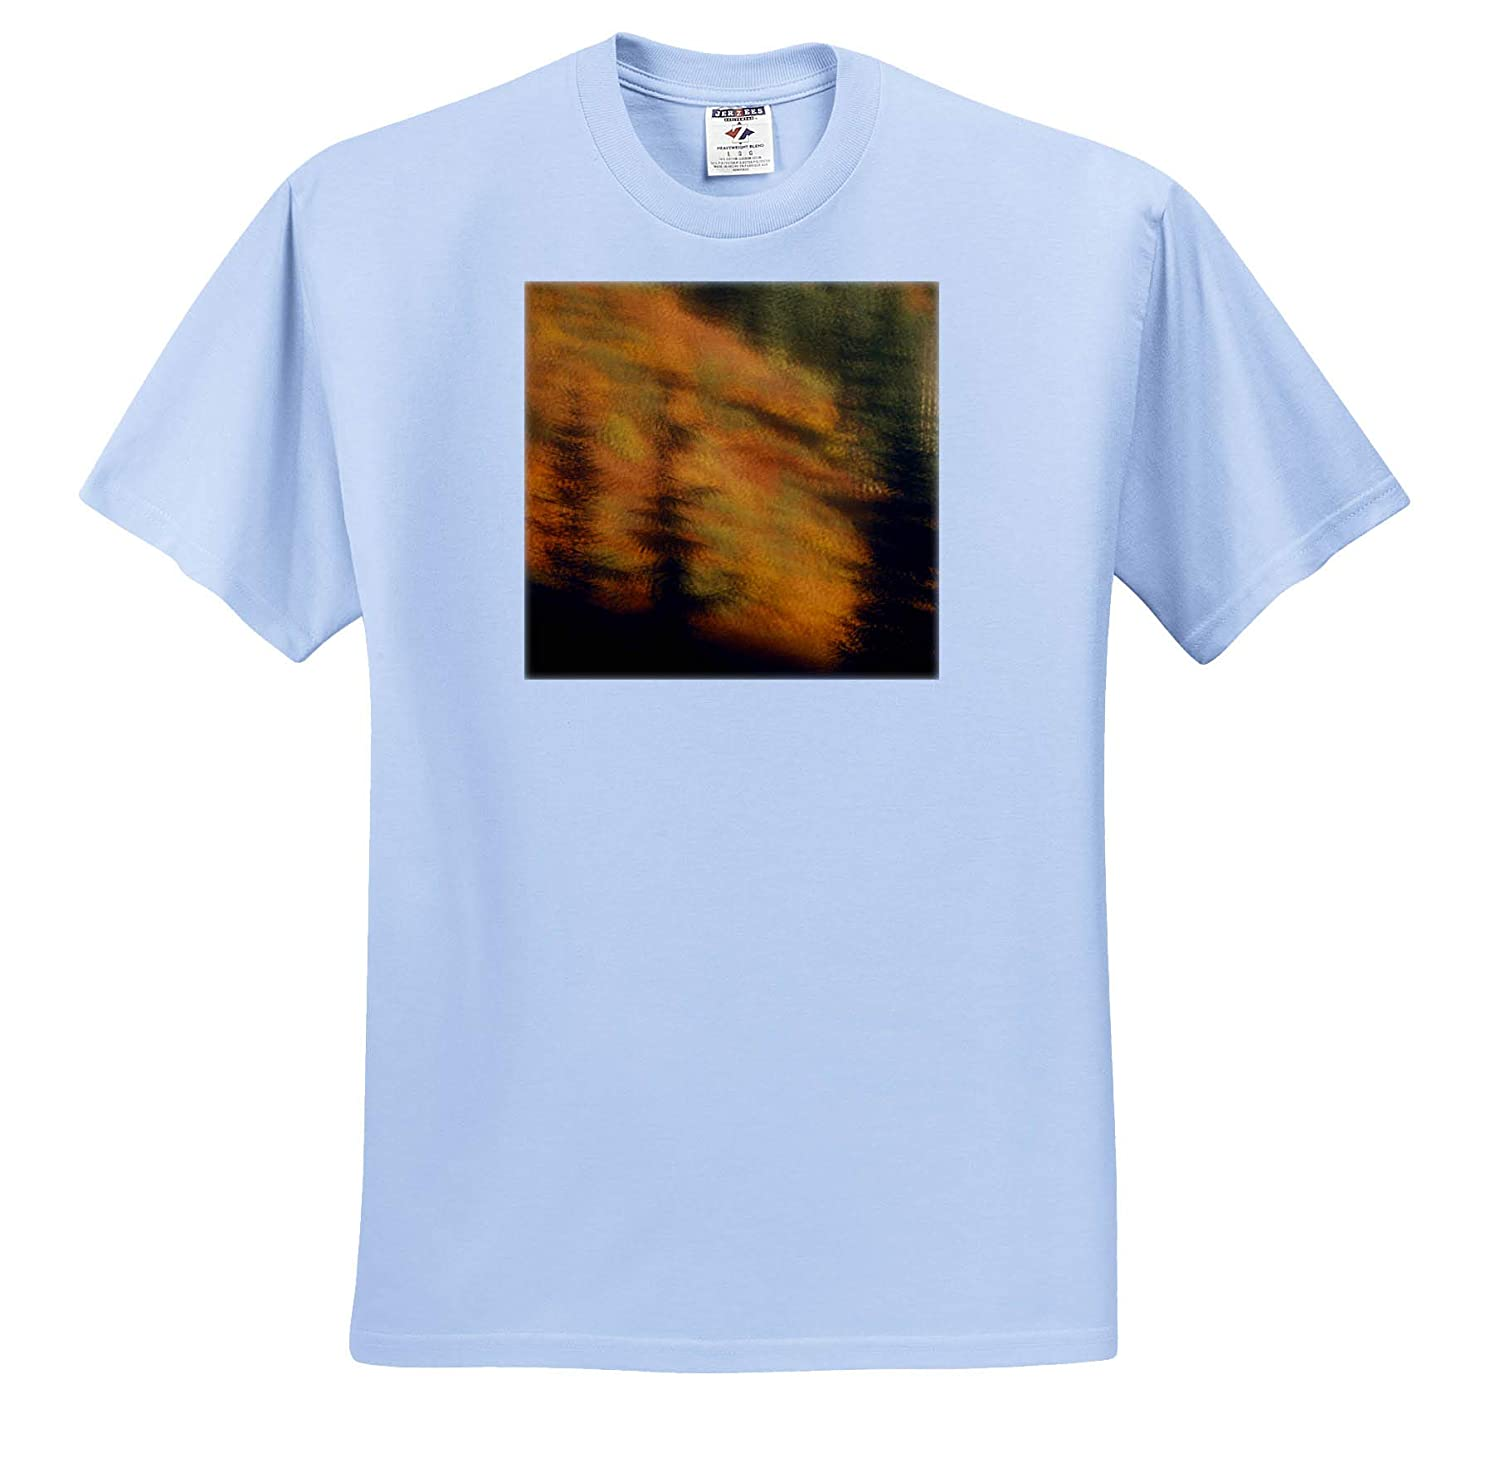 Blurred Background Image of Trees in a Forest in Autumn ts/_313924 - Adult T-Shirt XL 3dRose Danita Delimont Autumn